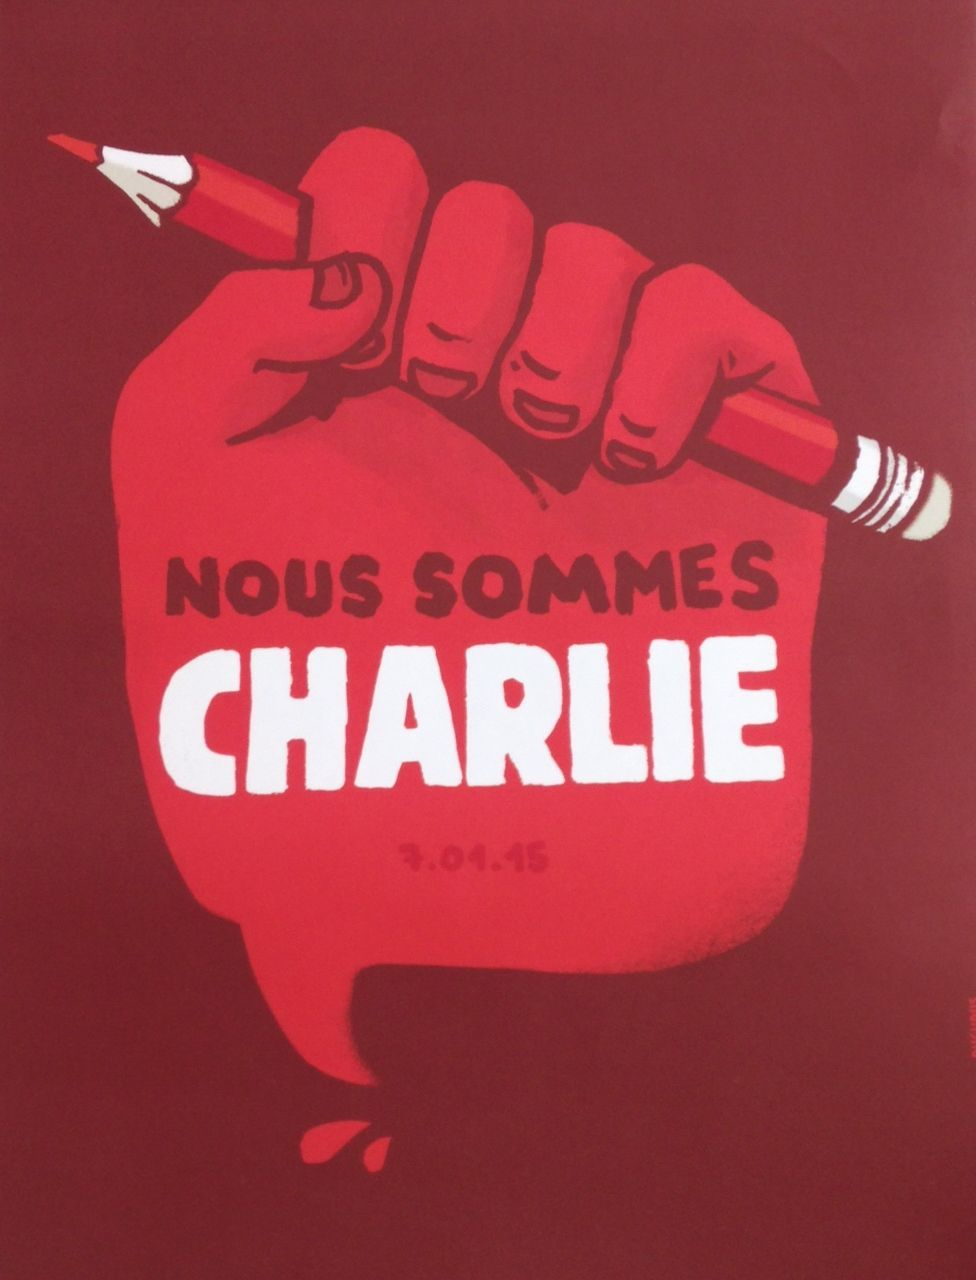 Poster for demonstrating for Charlie Hebdo - Artist DUGUDUS. 2015 Mucem, Marseille France